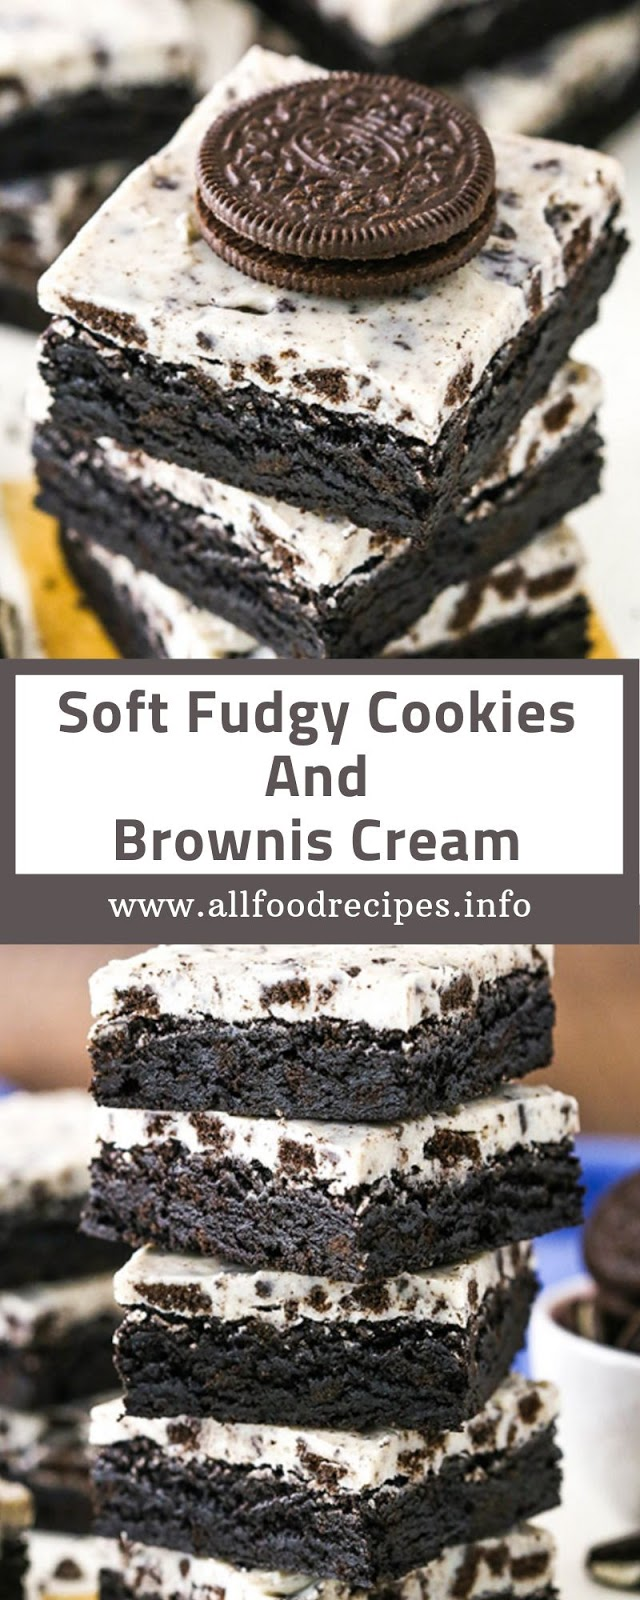 Soft Fudgy Cookies And Brownis Cream